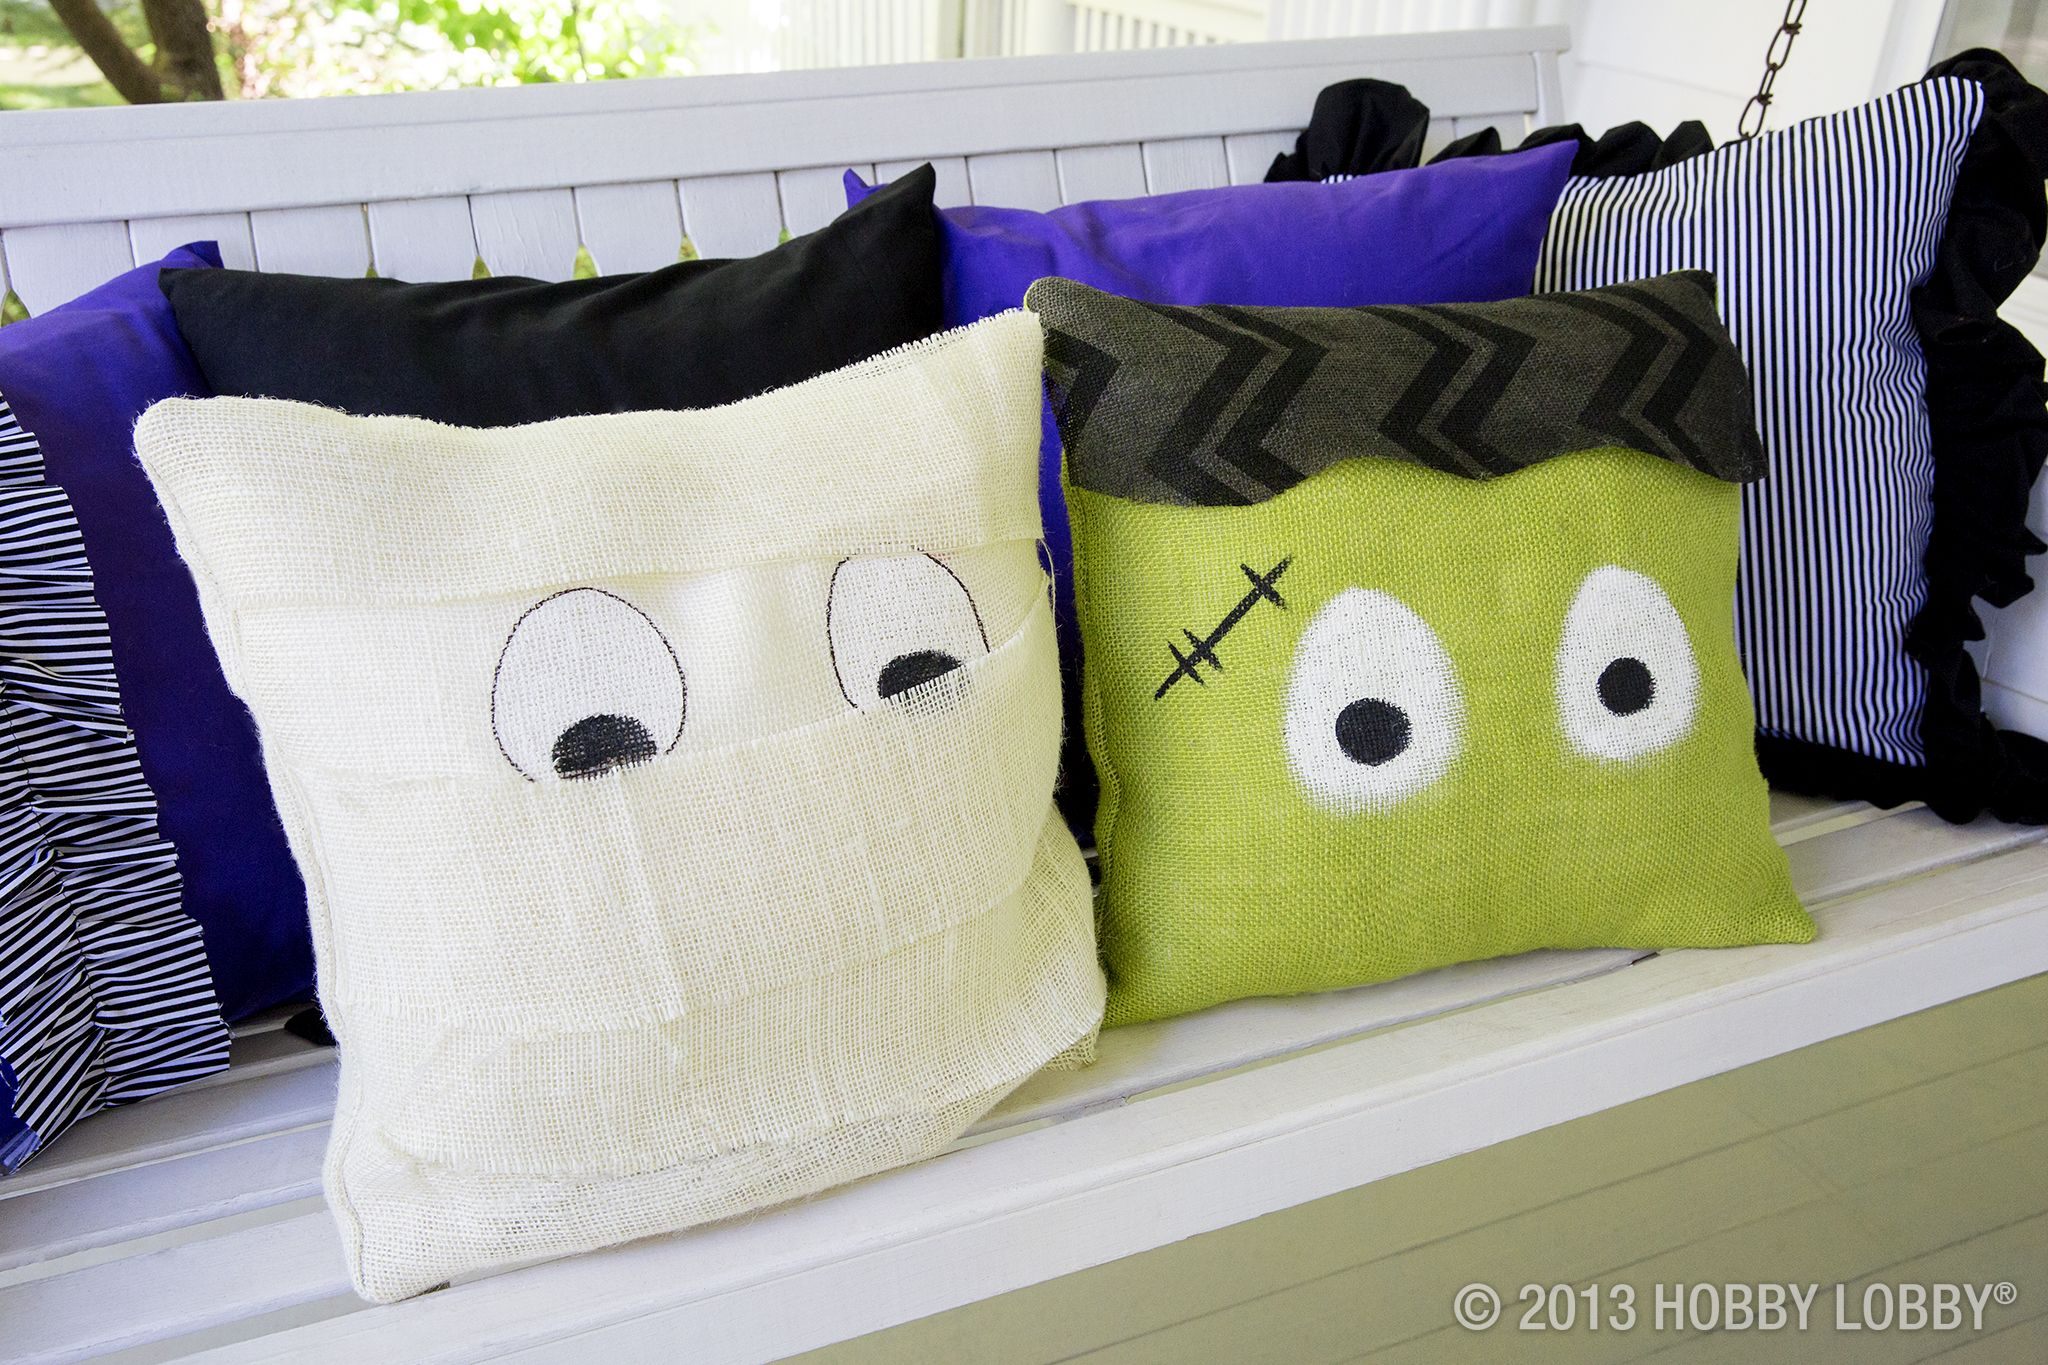 Wrap pillow forms in burlap and paint on some googly eyes for a fun - Hobby Lobby Halloween Decorations